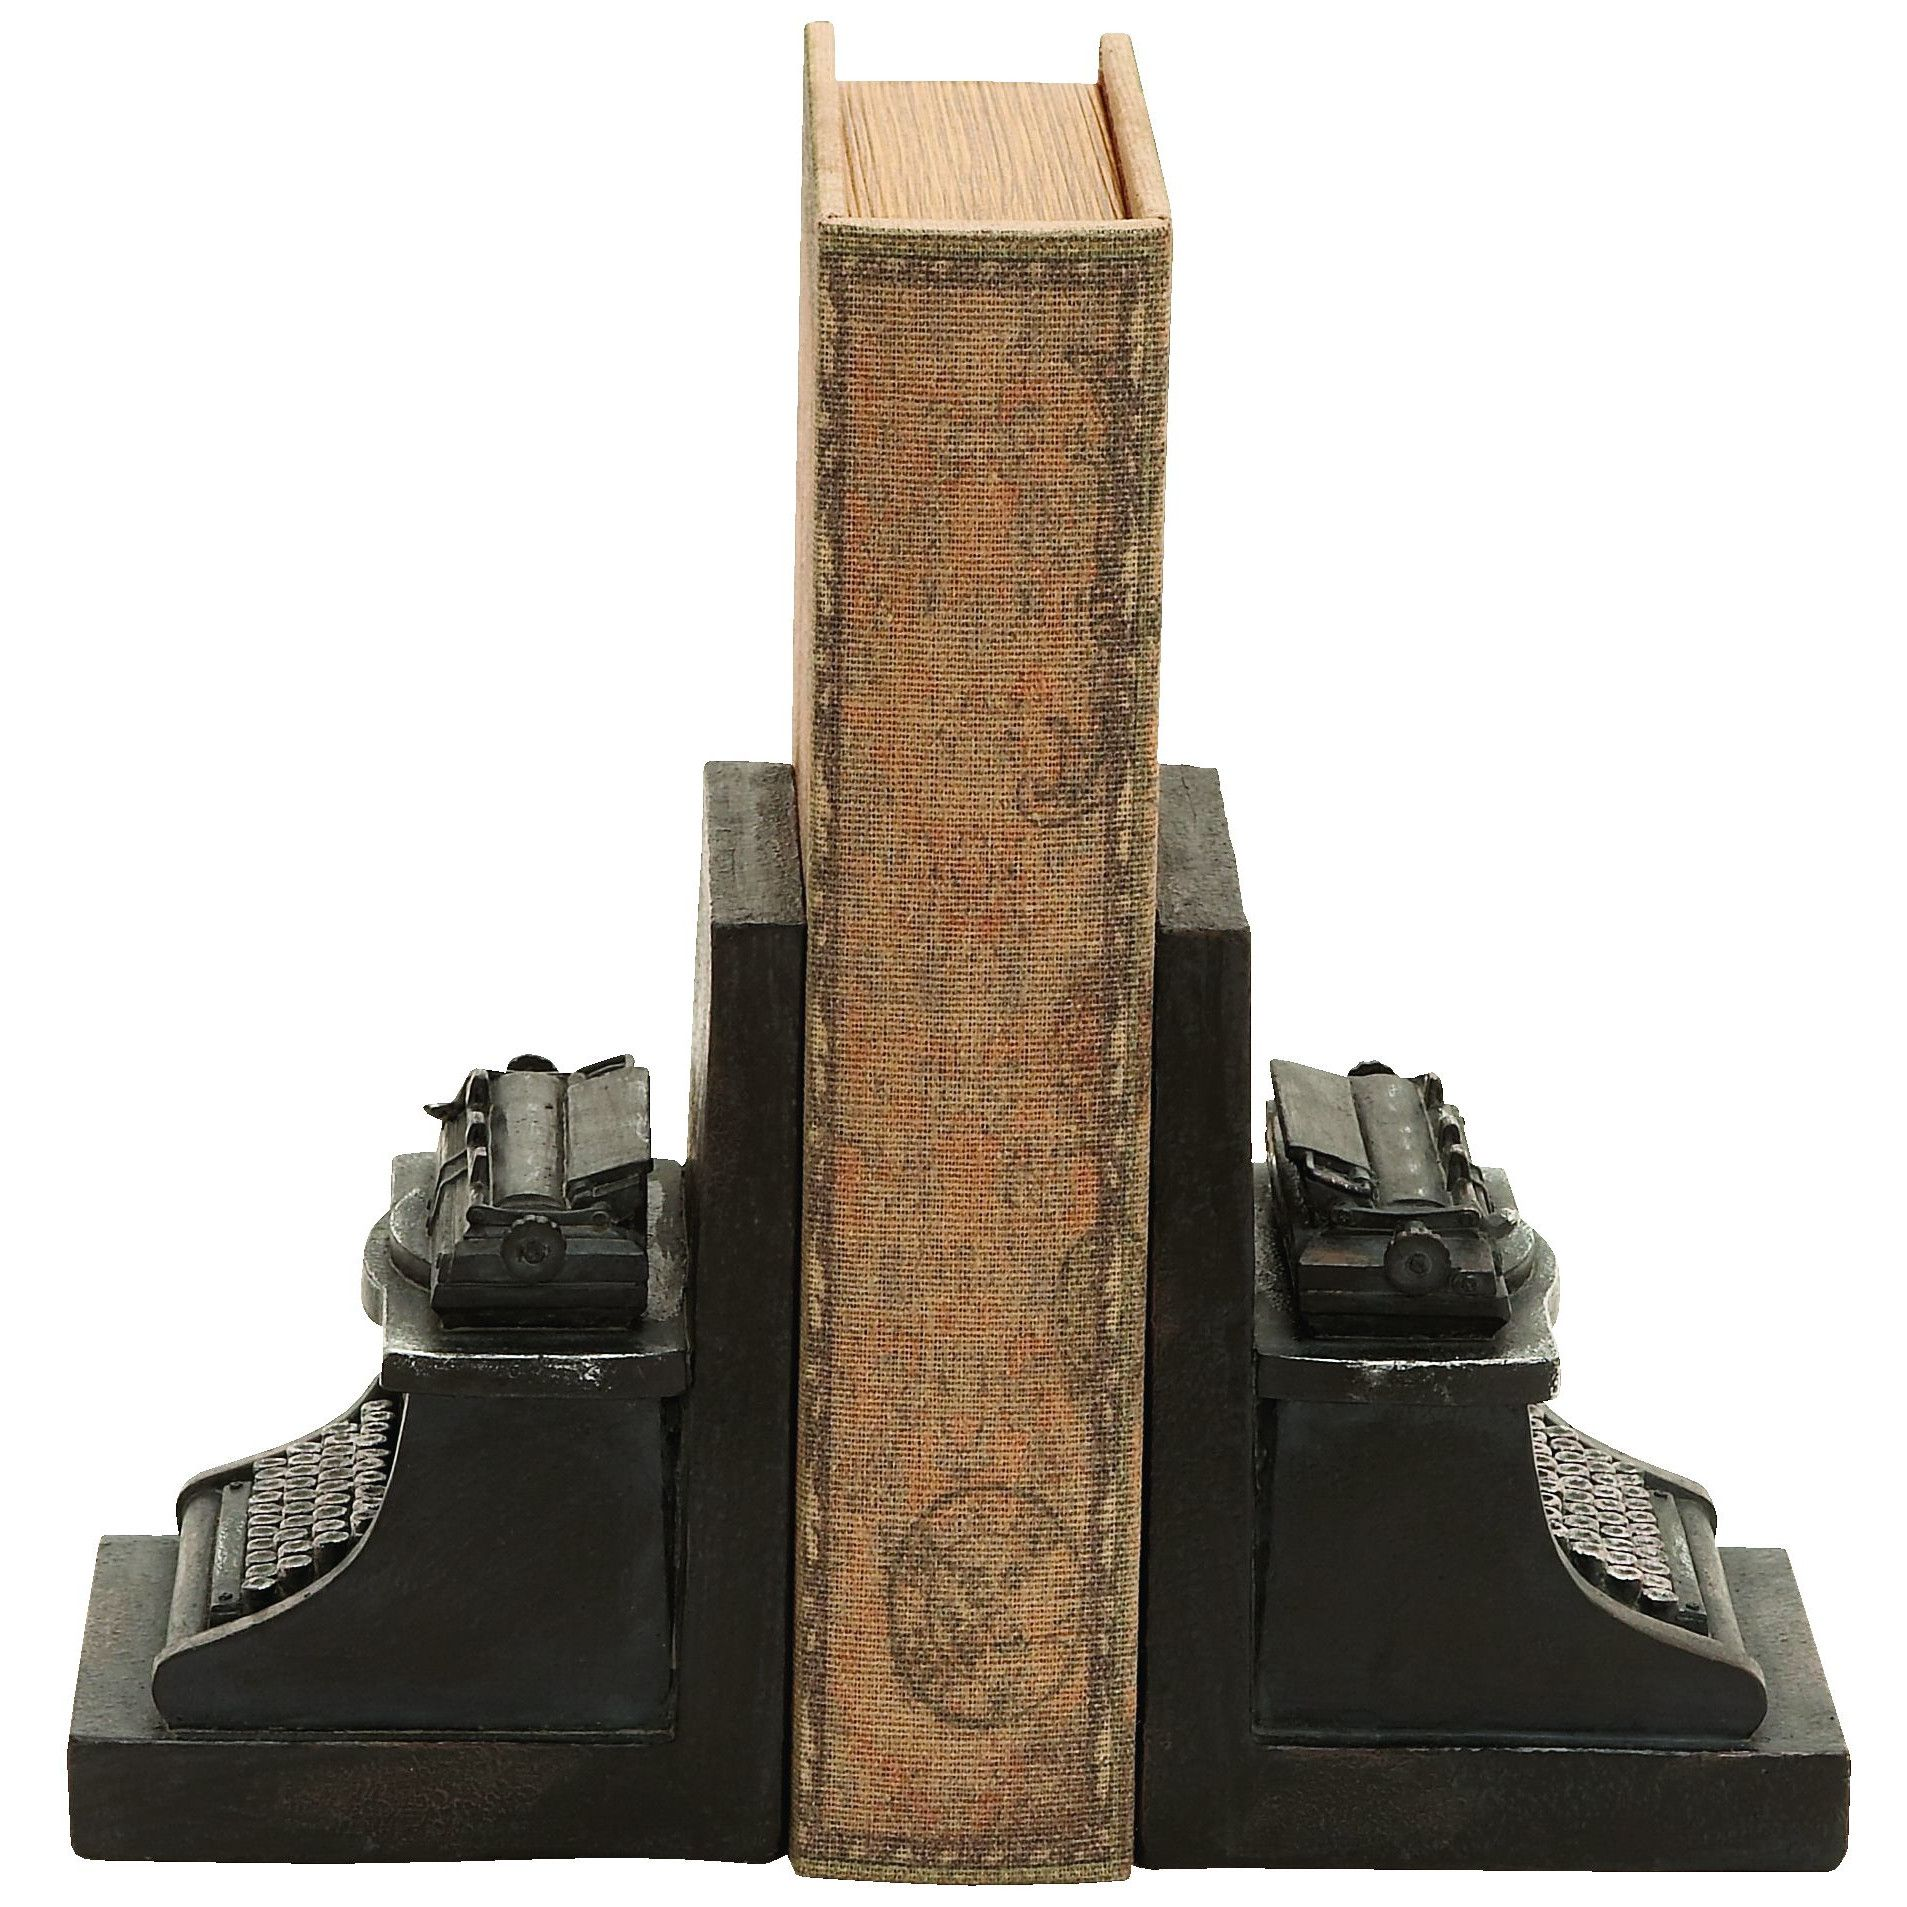 Woodland Imports Old Look Typewriter Themed Book Ends